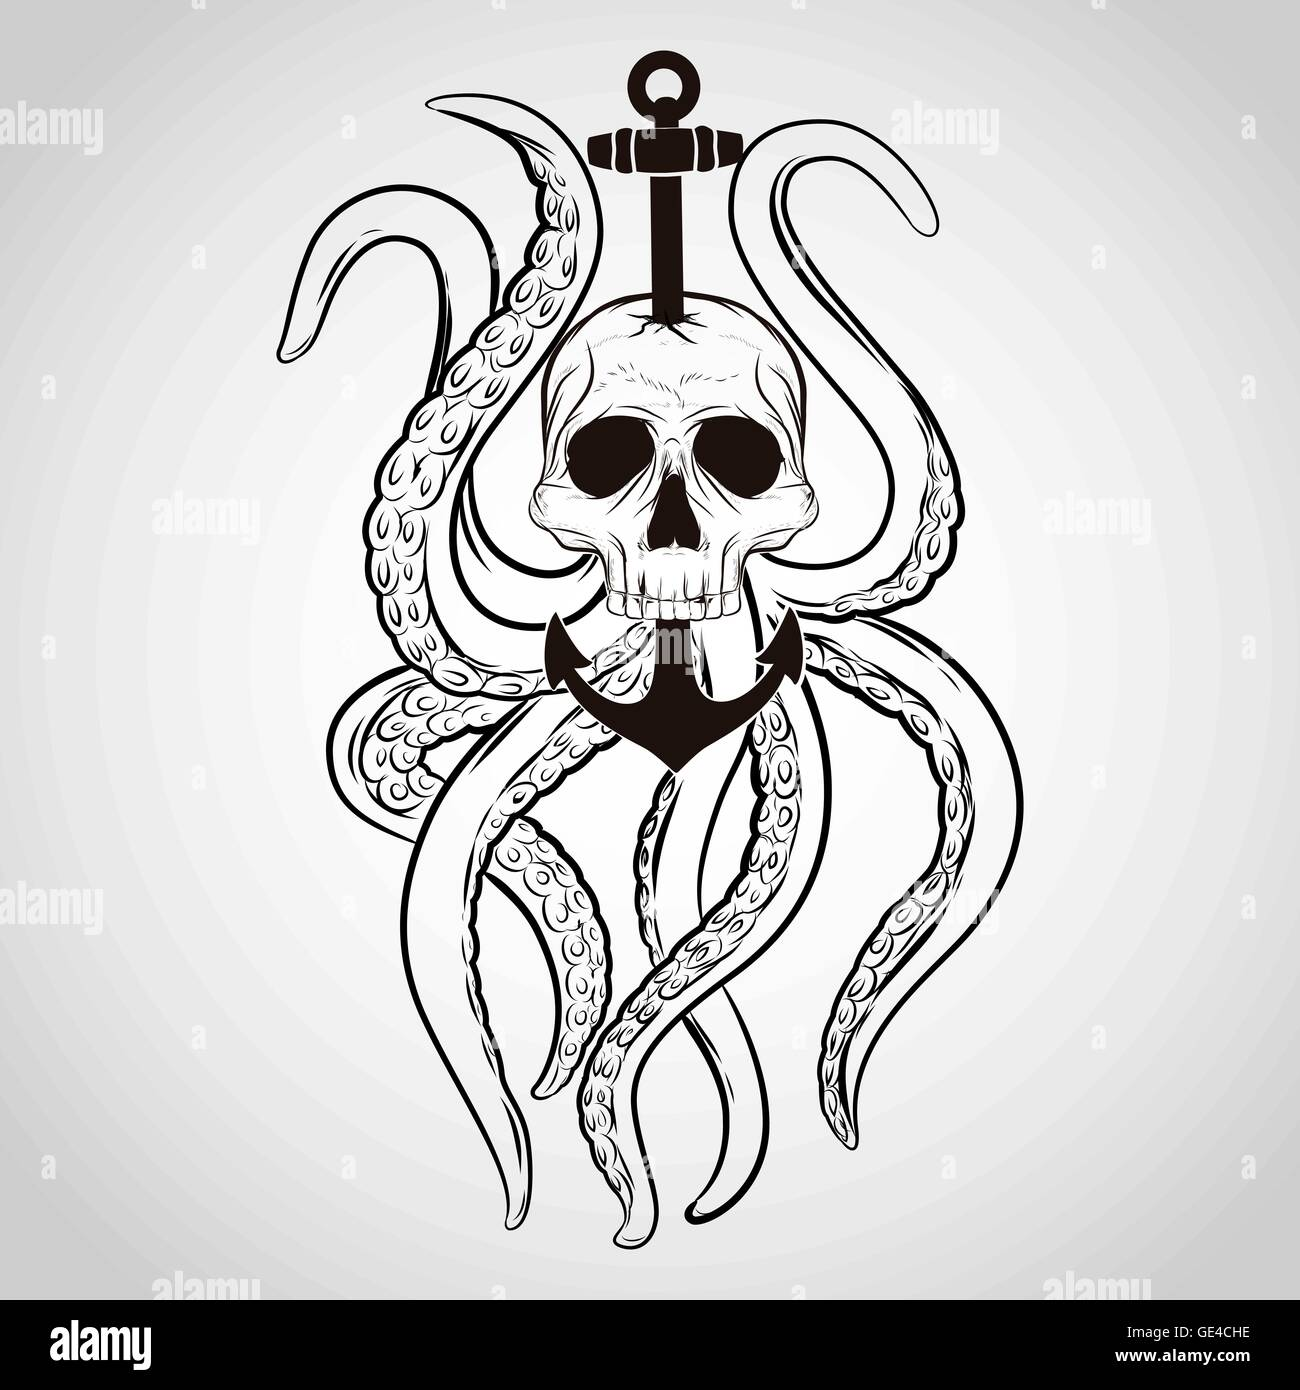 Shirt design octopus - Stock Vector T Shirt Design Skull With Octopus And Anchor In A Tattoo Style